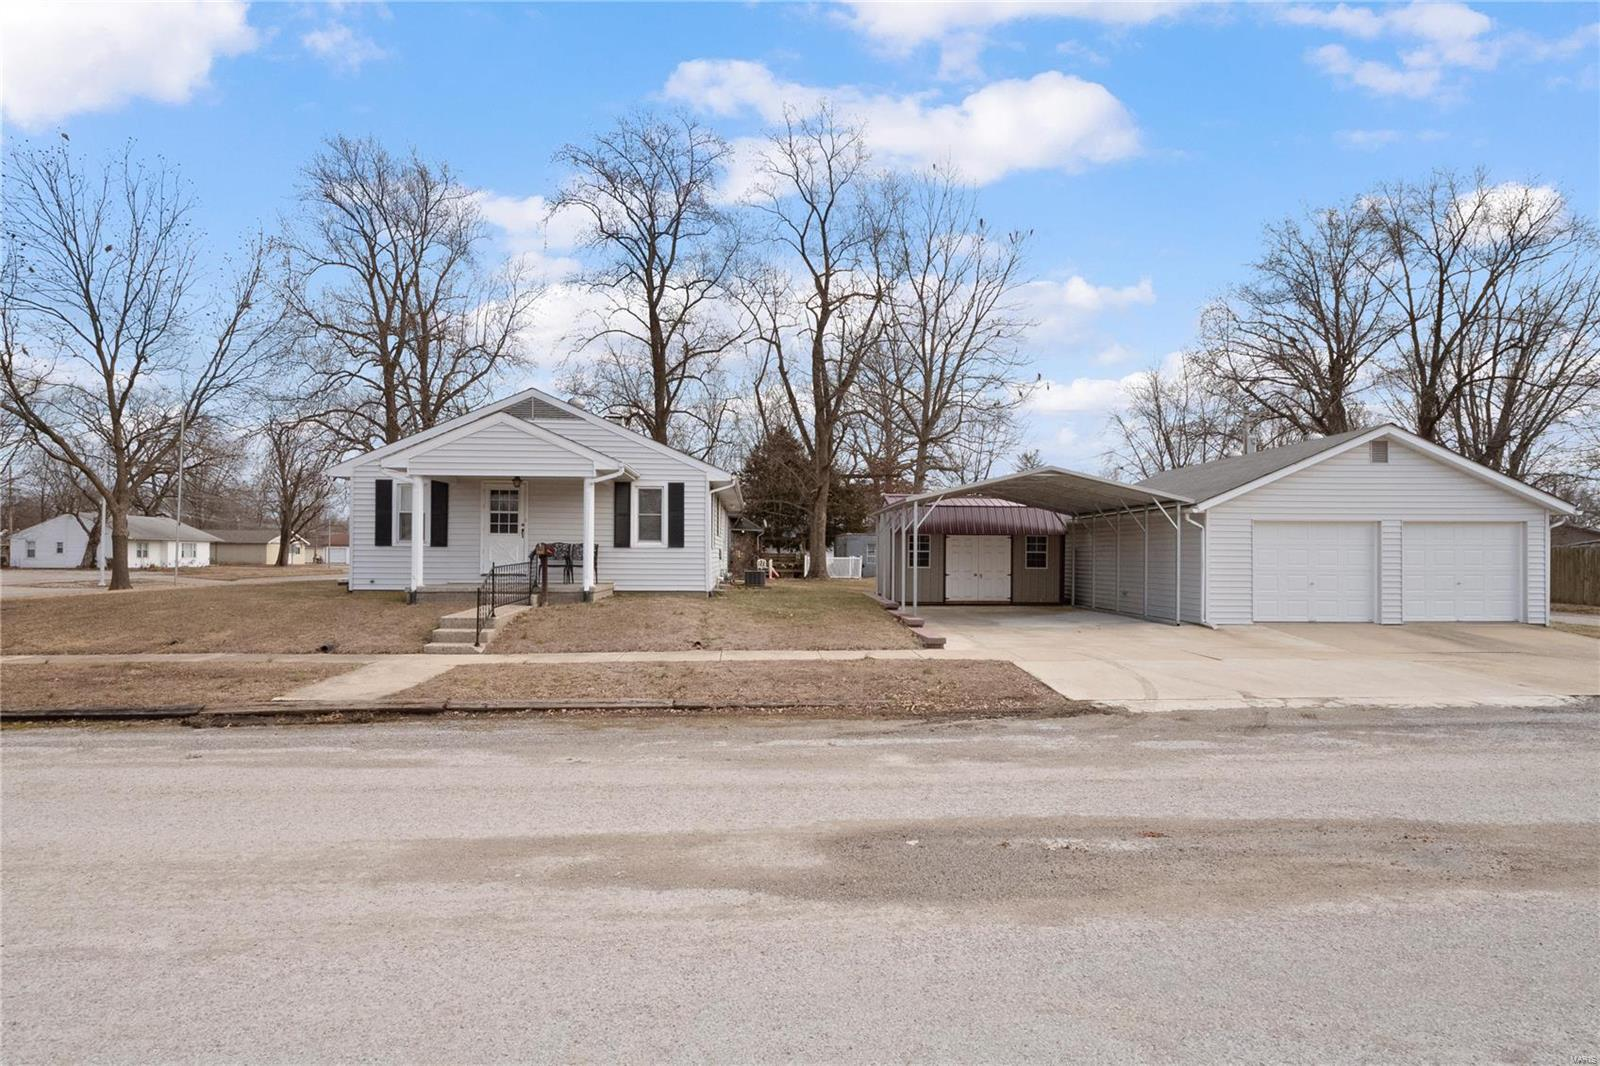 390 FRANKLIN Street Property Photo - Carlyle, IL real estate listing